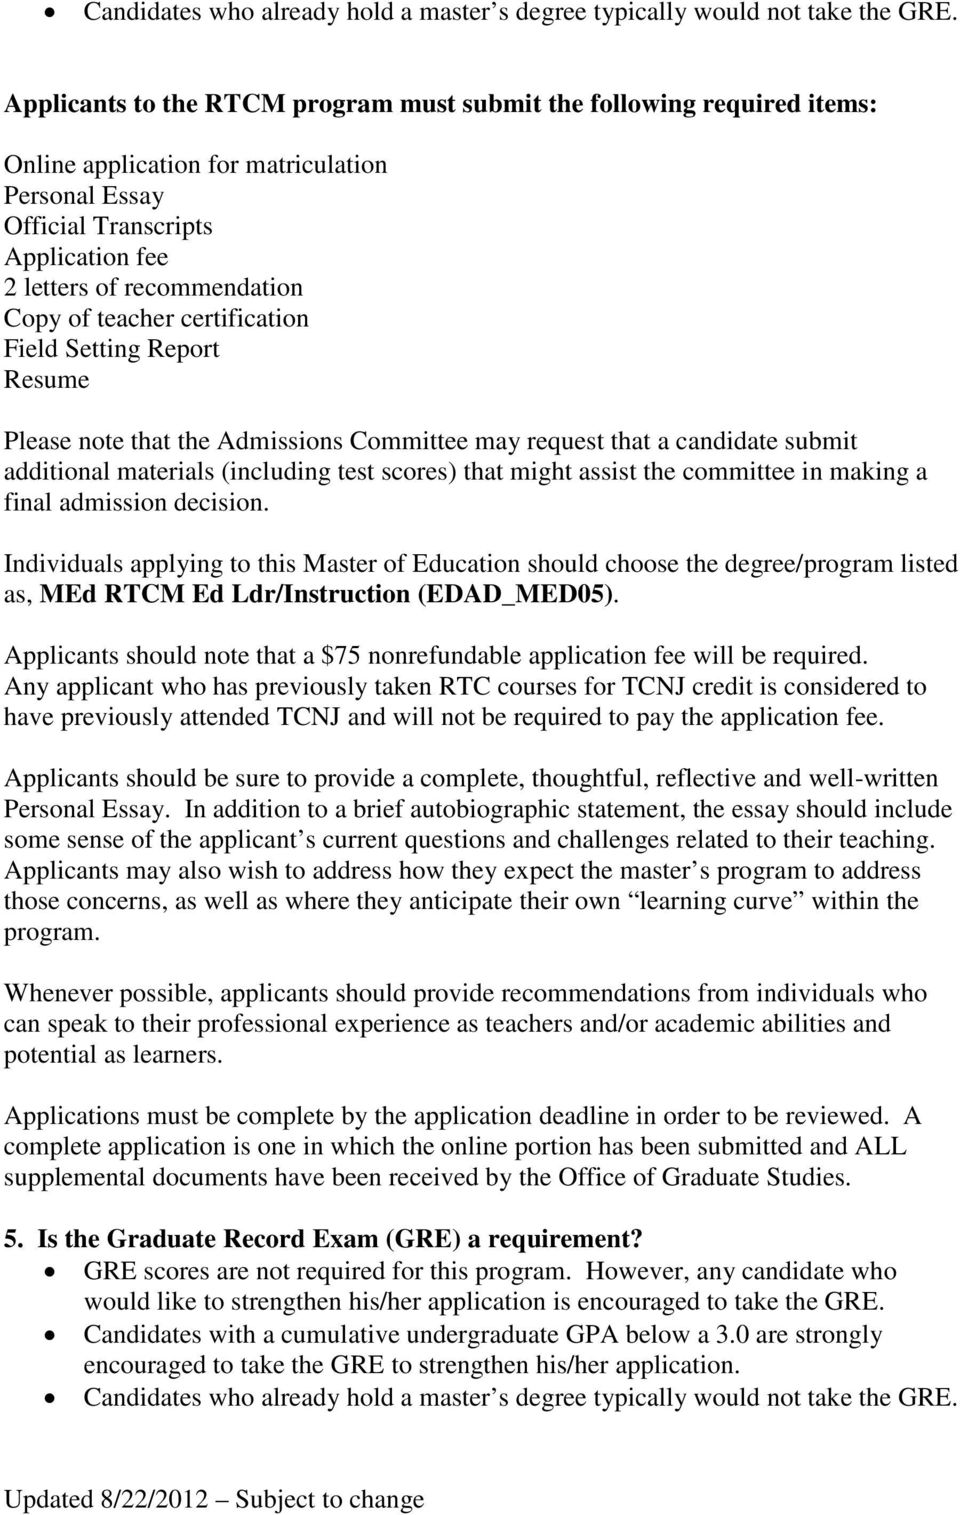 teacher certification Field Setting Report Resume Please note that the Admissions Committee may request that a candidate submit additional materials (including test scores) that might assist the